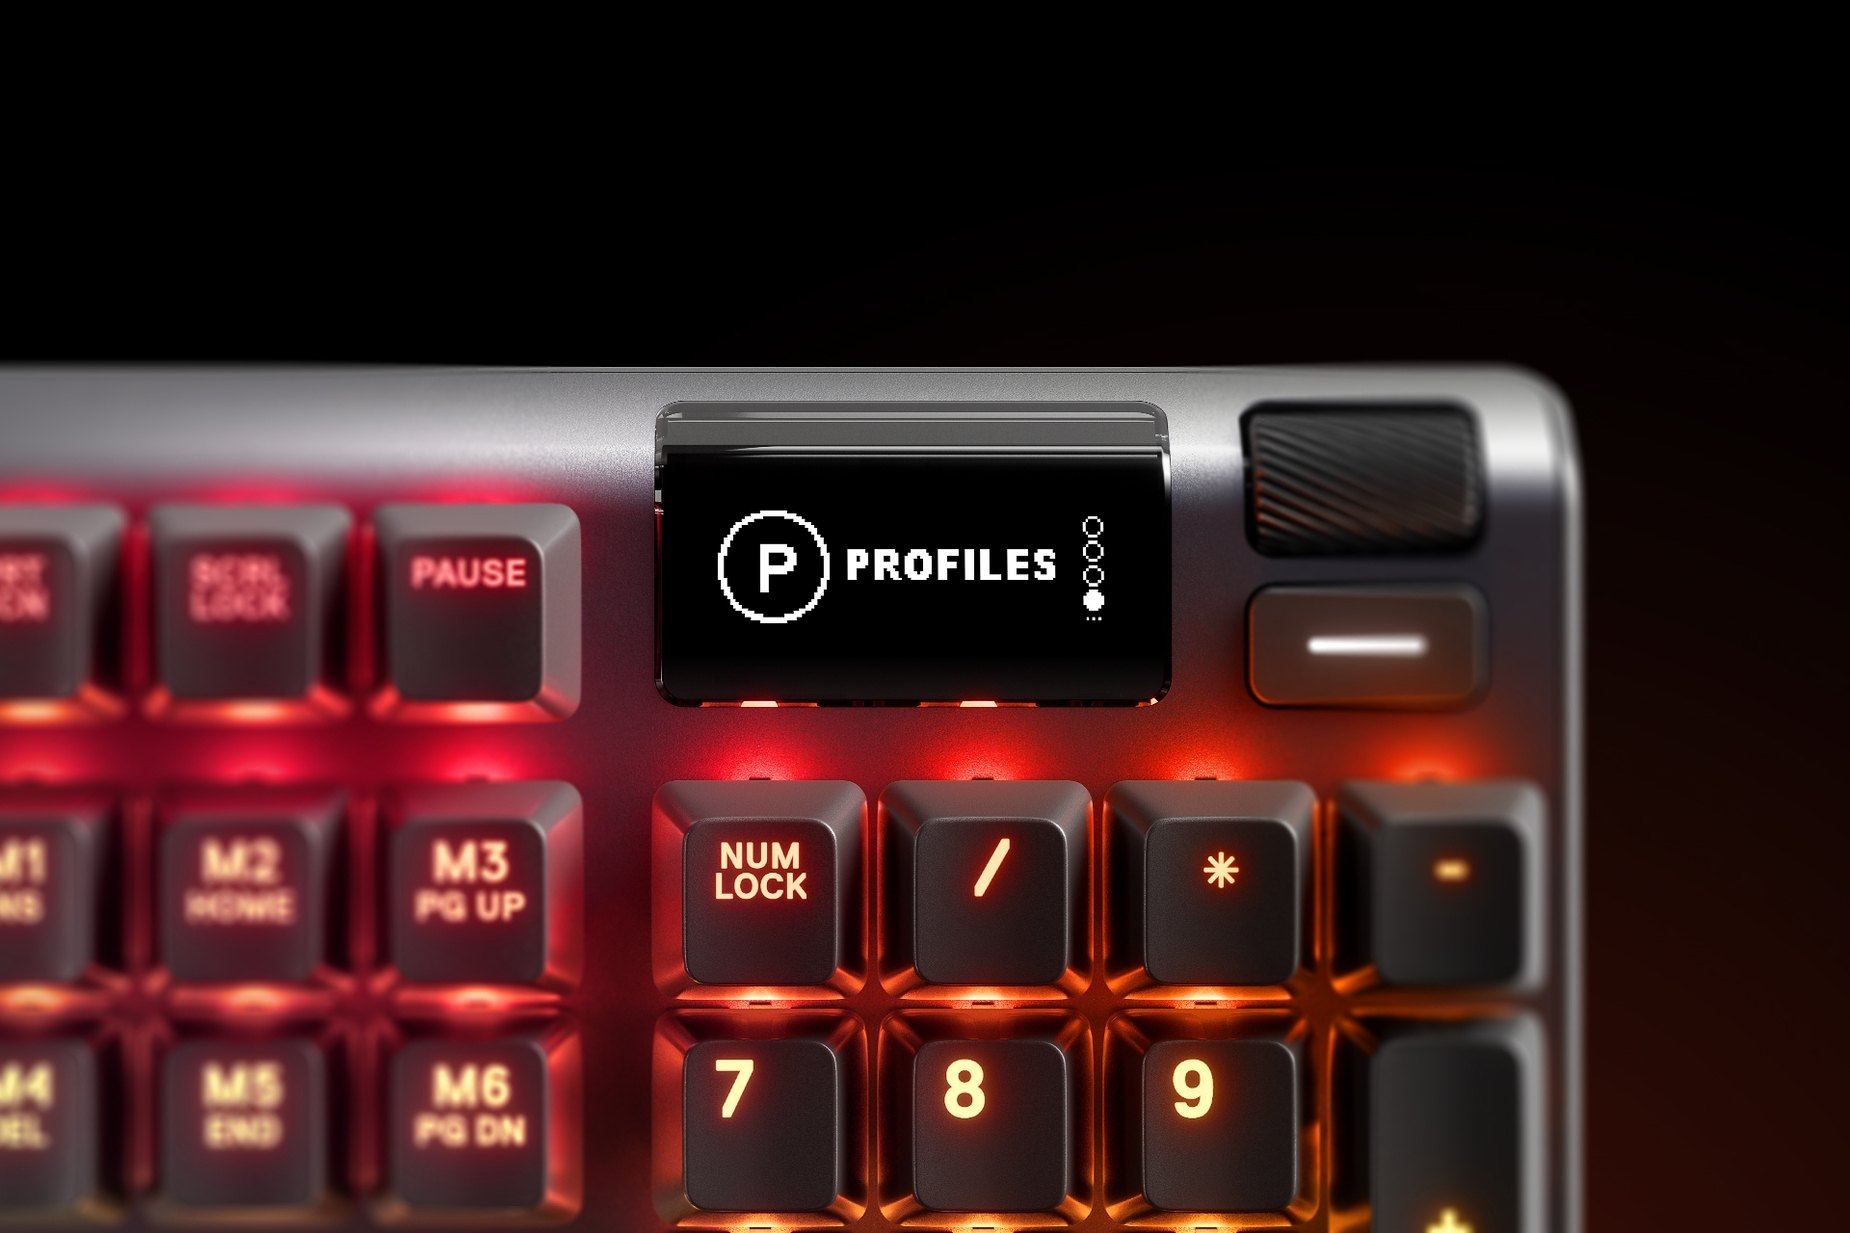 Zoomed in view of the multimedia and settings controls/volume roller on the French - APEX PRO gaming keyboard